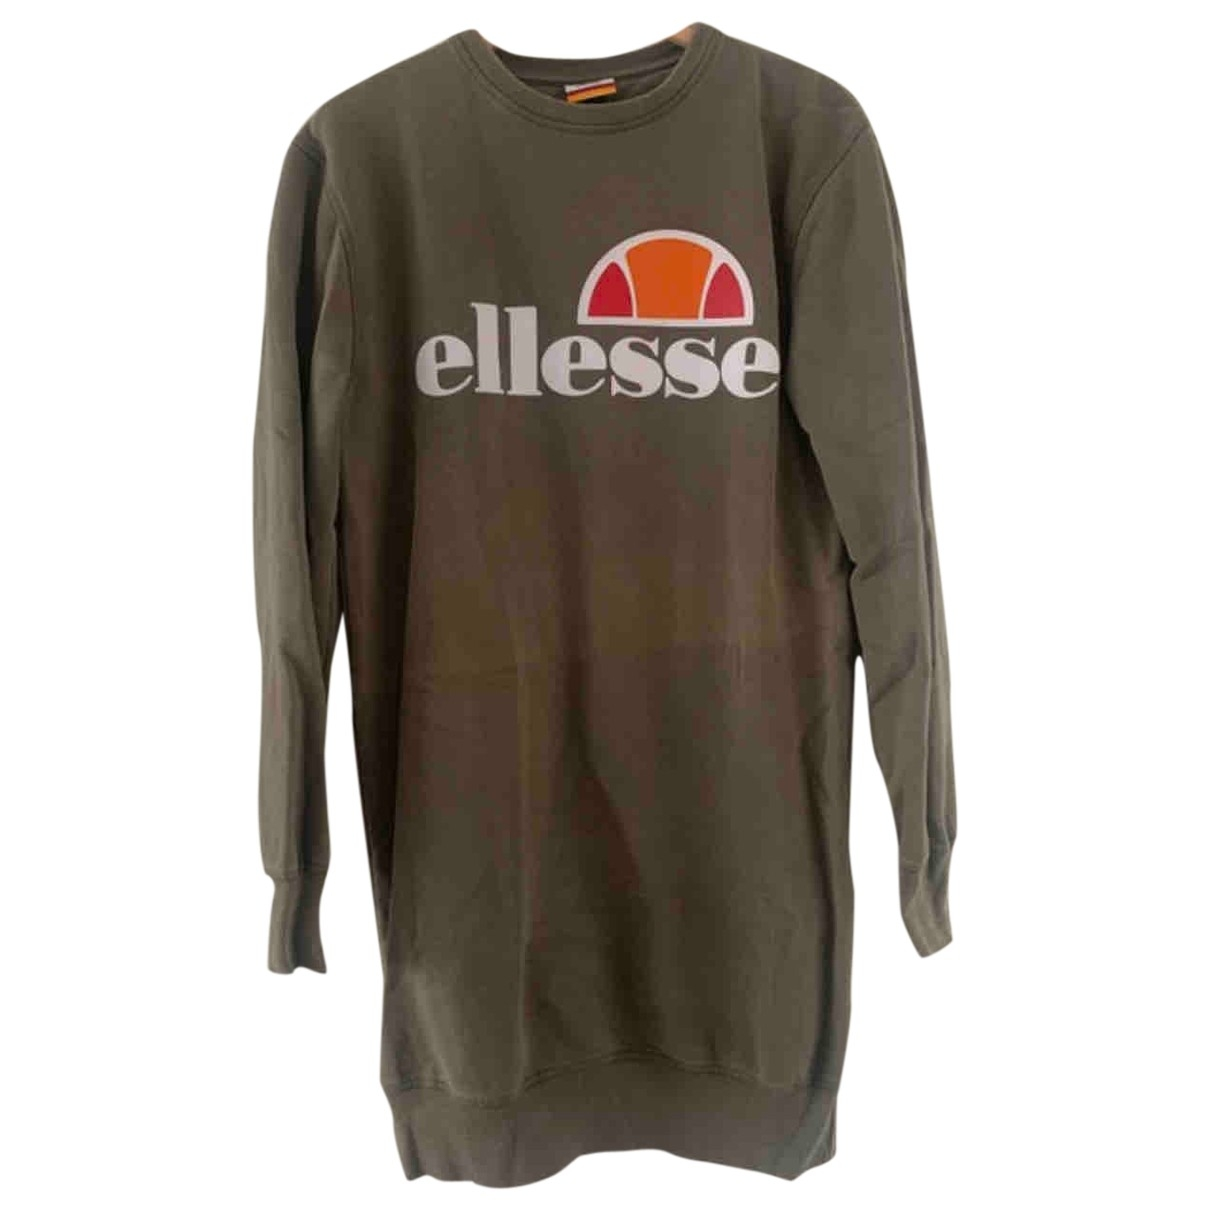 Ellesse \N Green Cotton dress for Women 10 UK